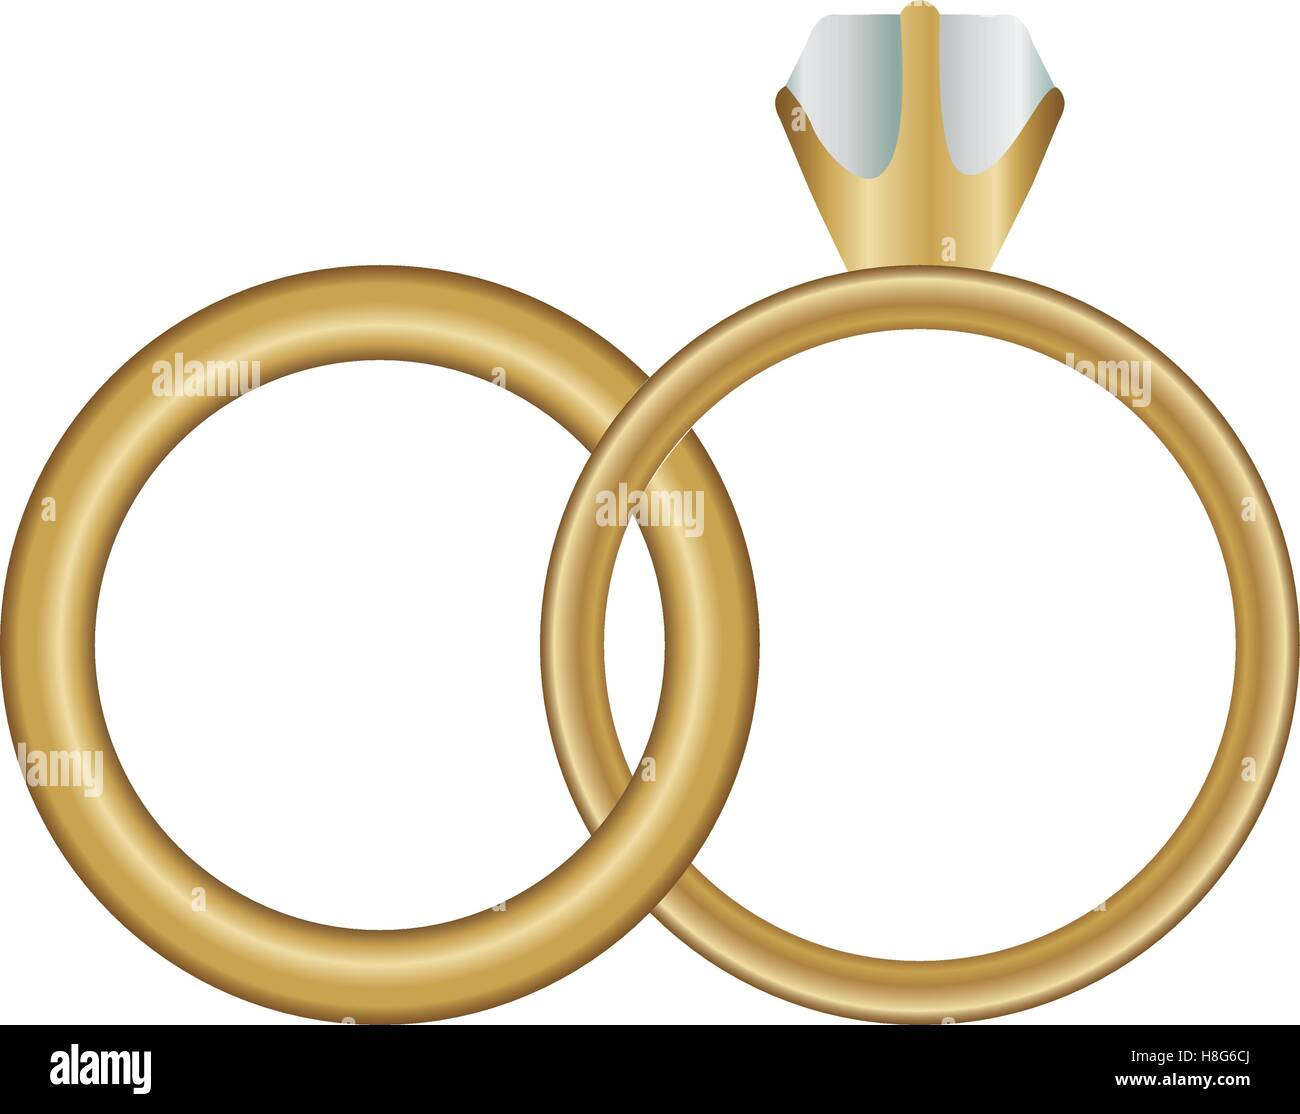 engagement ring icon image vector illustration design stock vector